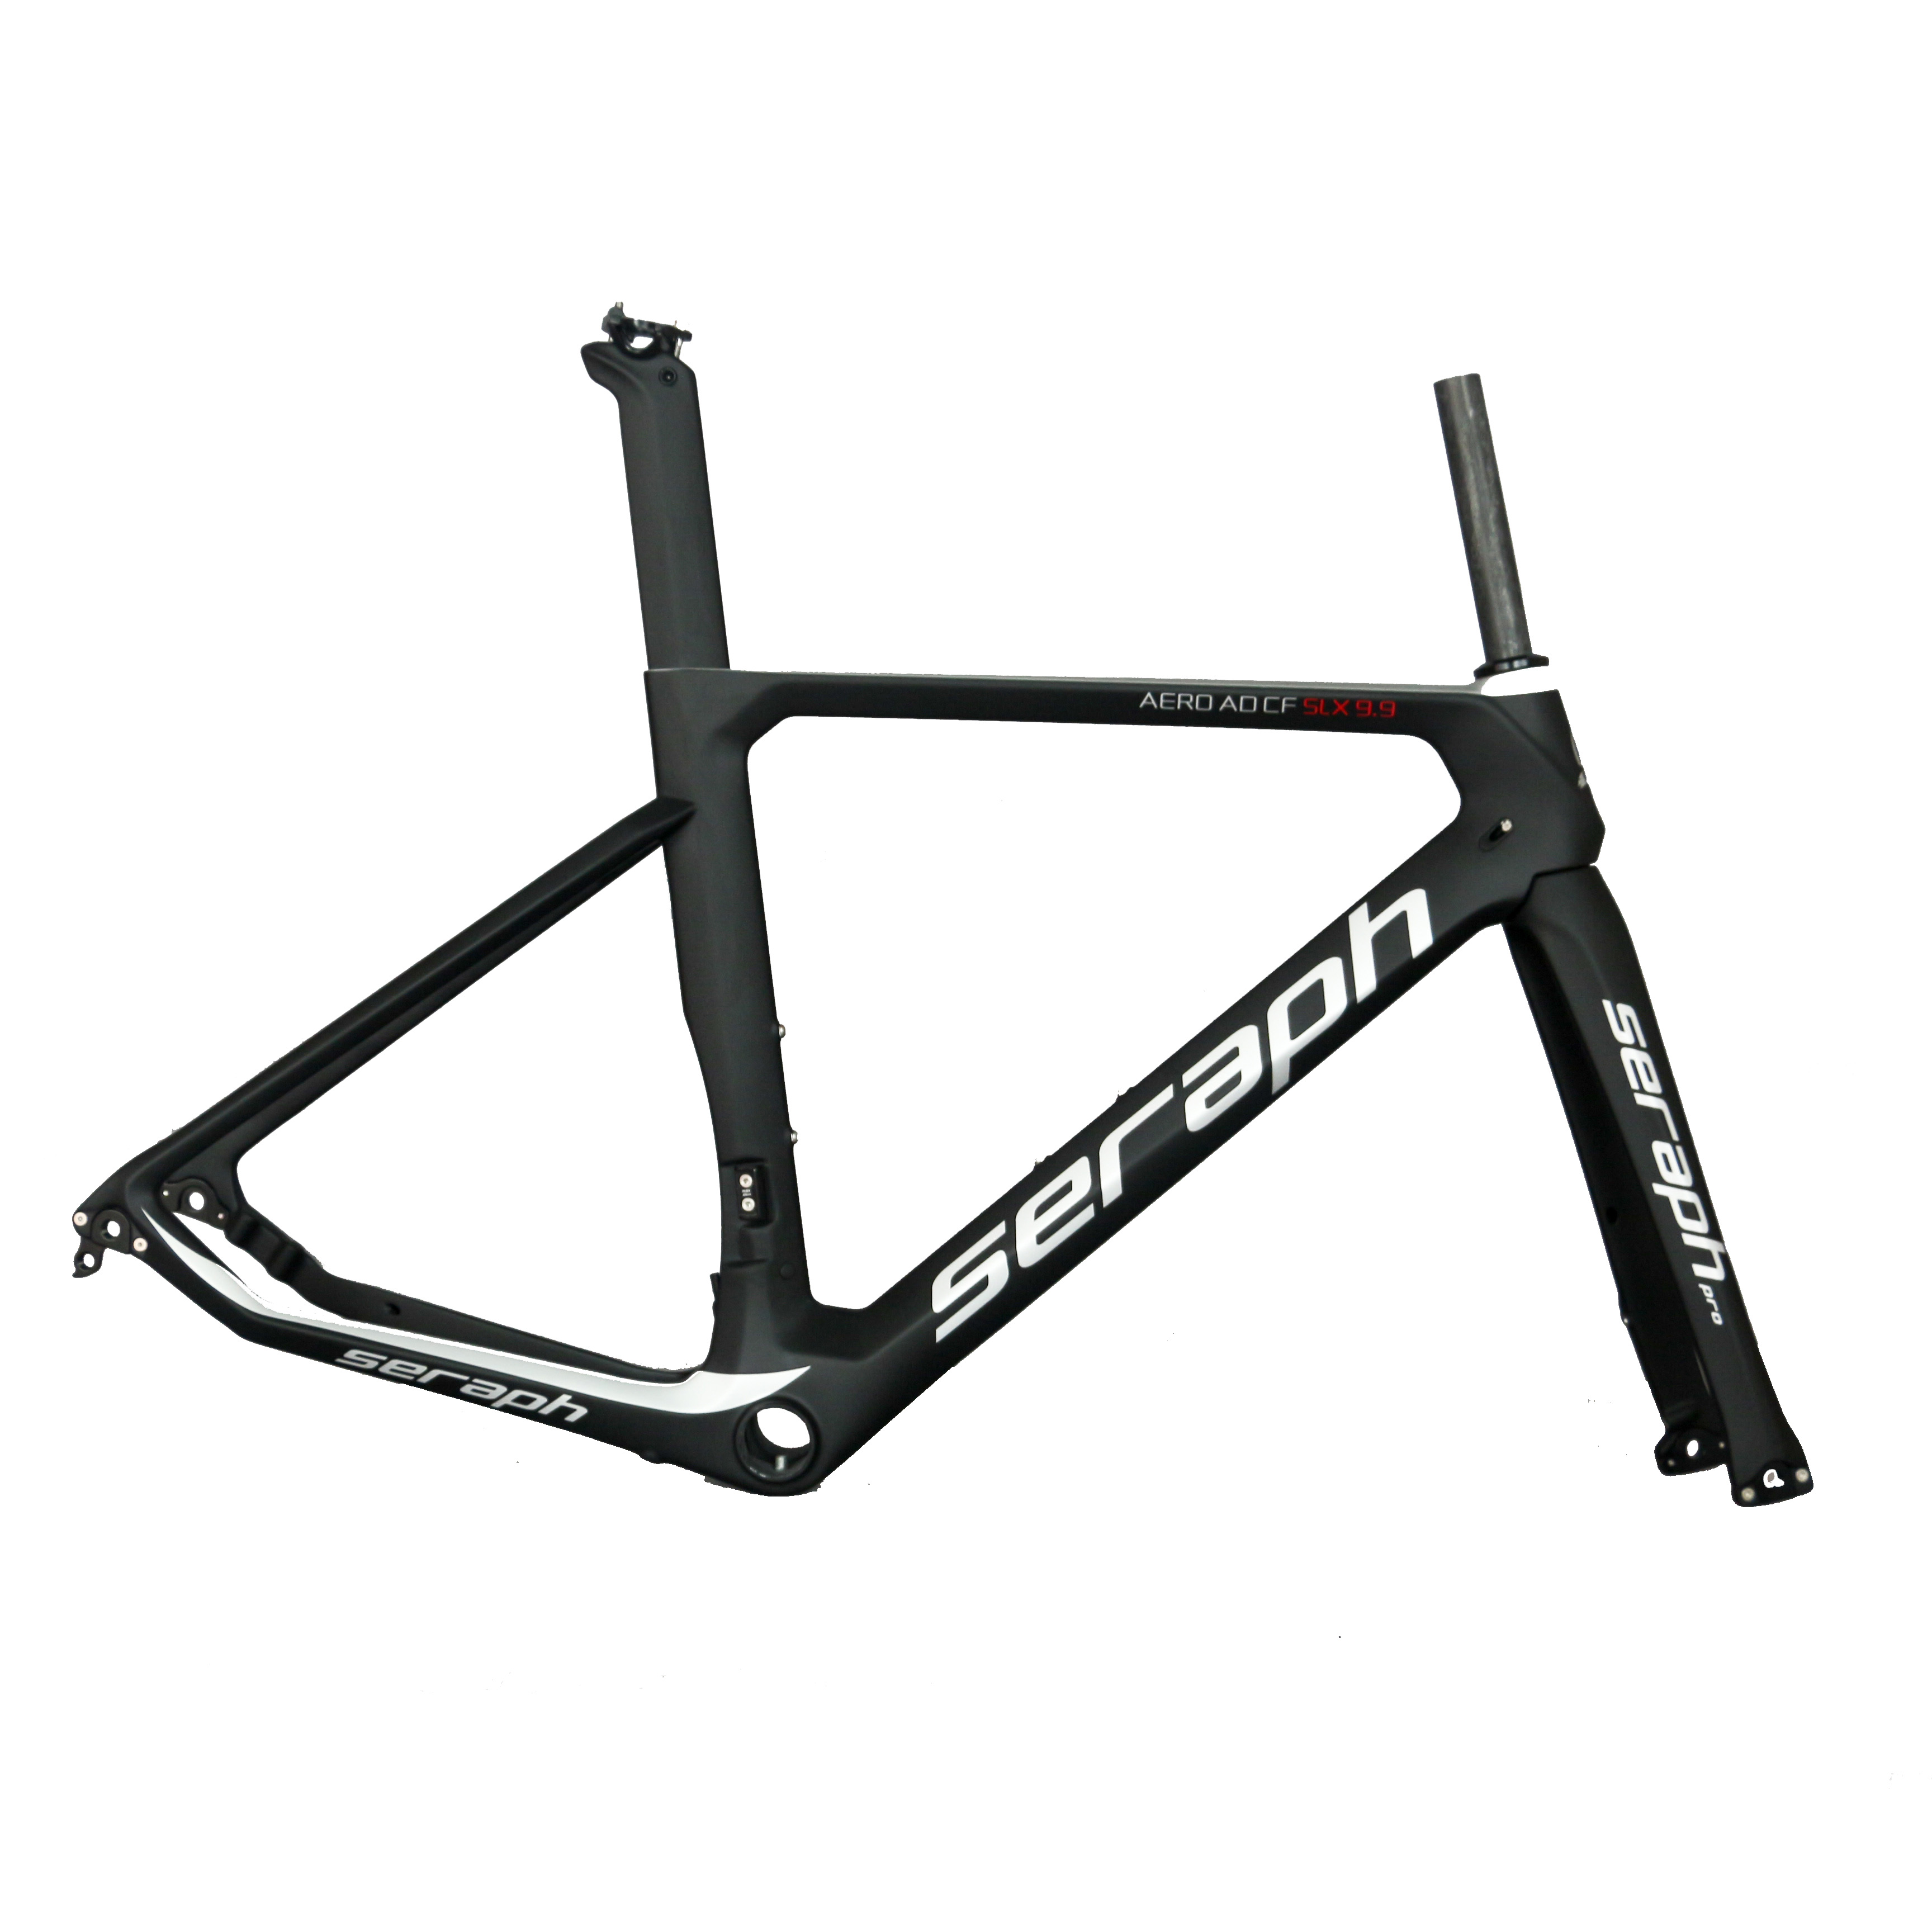 2019 Carbon Cycling Frame Road Bike  Di2 Carbon Bicycle Frame TT-X10 Made In China